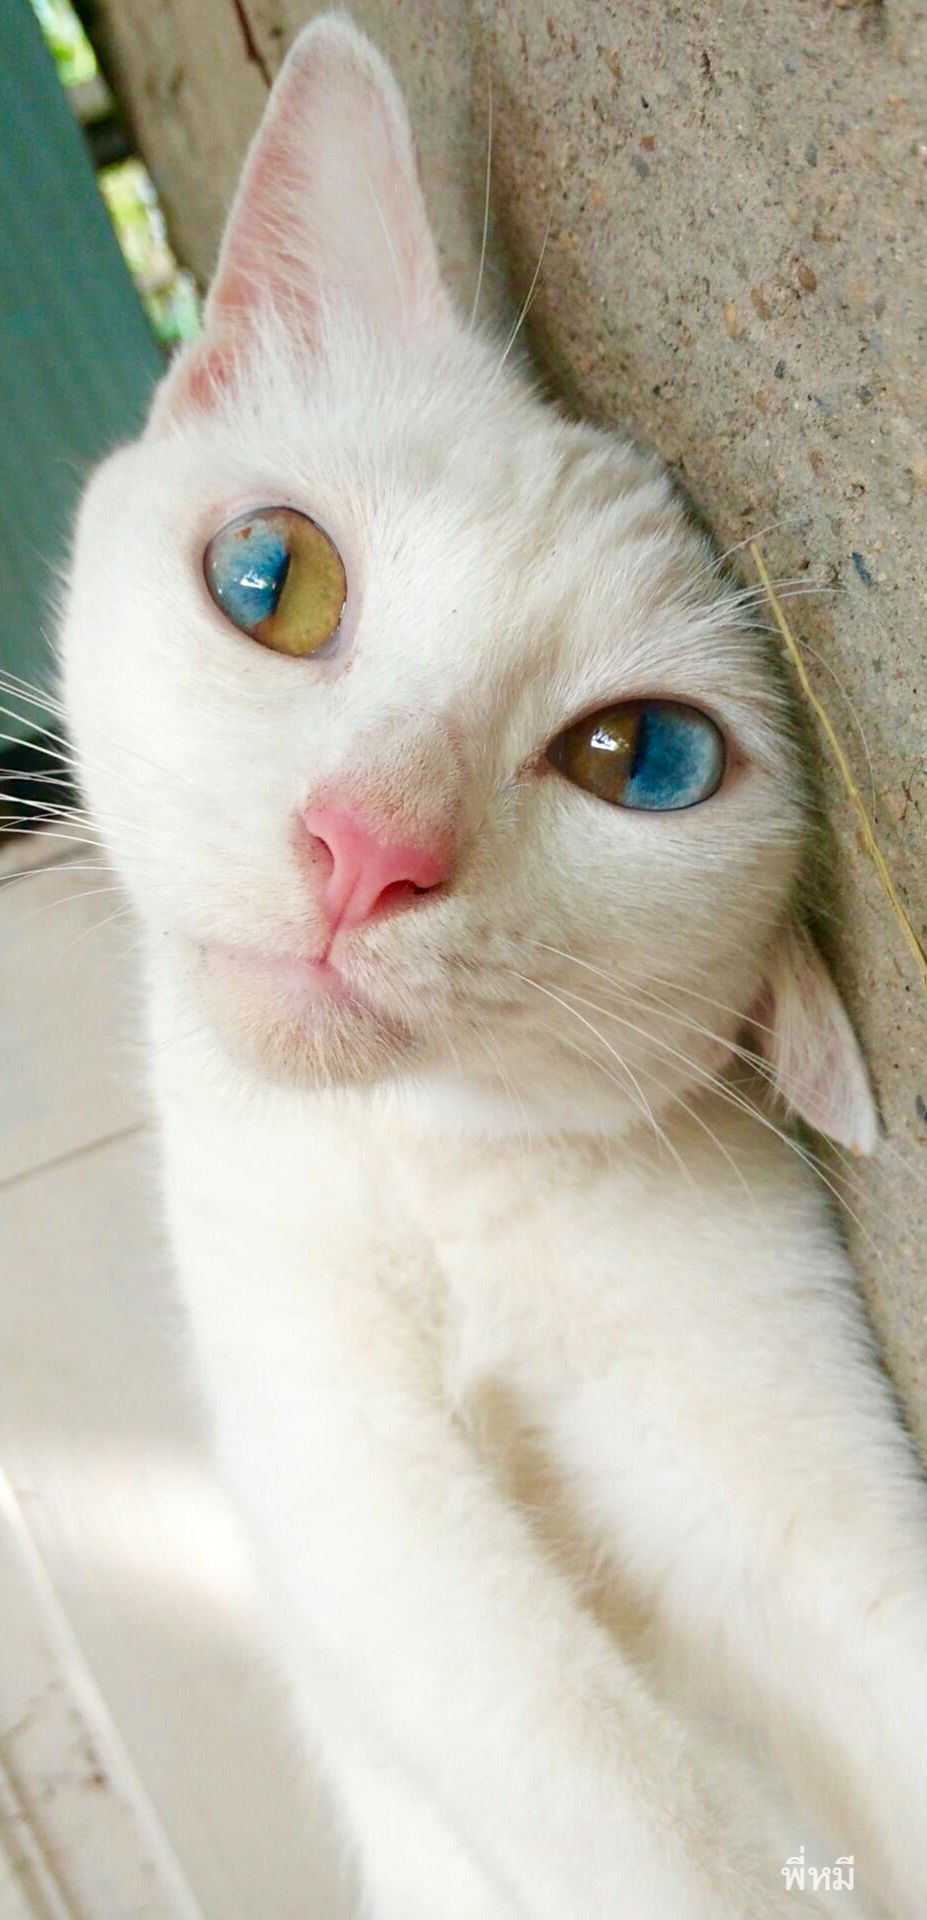 Supposedly All White Cats With Blue Eyes Are Deaf Hopefully This Pretty One Beat The Genetics Gatos Bonitos Animais Felino